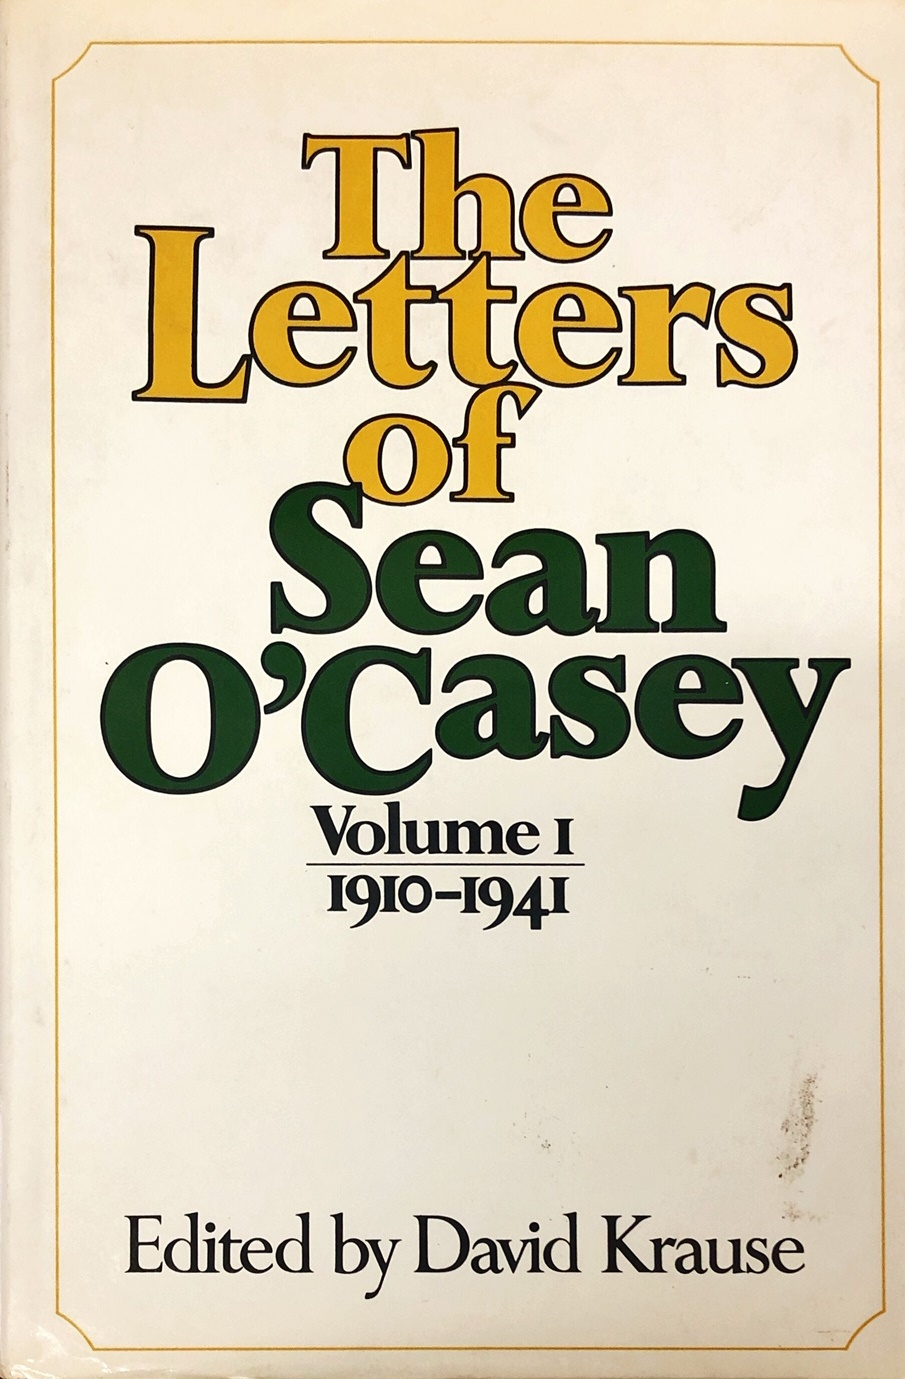 Lot 38 - O'Casey - Krause (David) The Letters of Sean O'Casey, 1910 - 1964. 4 vols. roy 8vo L.